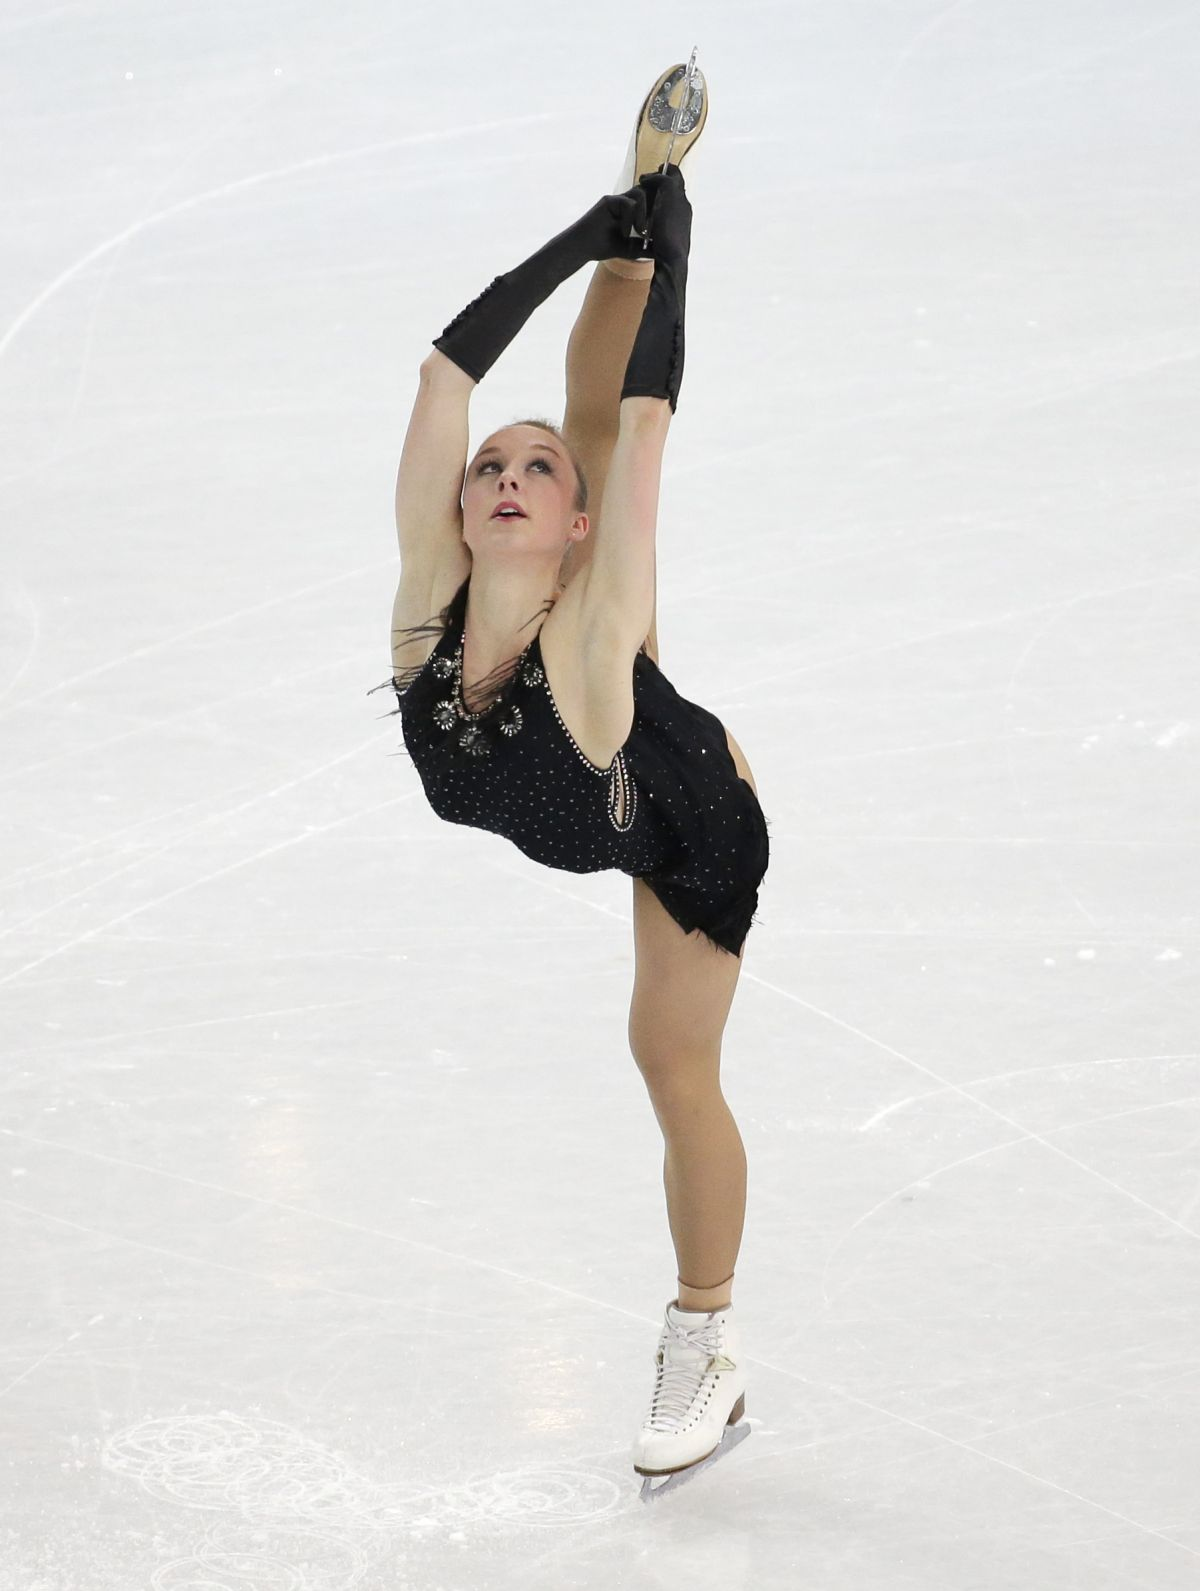 Nathalie Weinzierl At Winter Olympics In Sochi